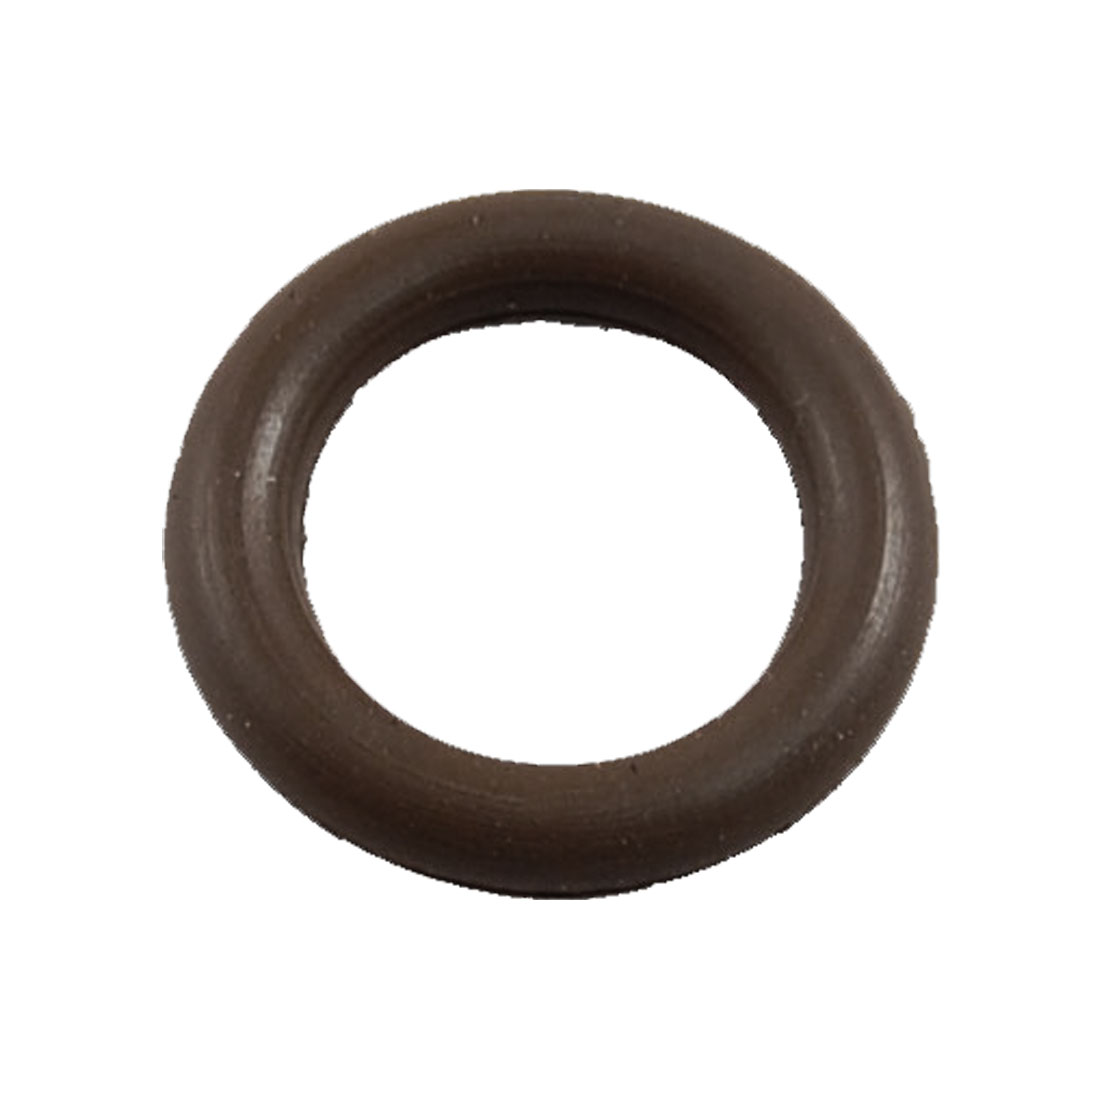 Fluorine Rubber O Ring Oil Sealing Gasket Washer 14mm x 2.5mm x 9mm